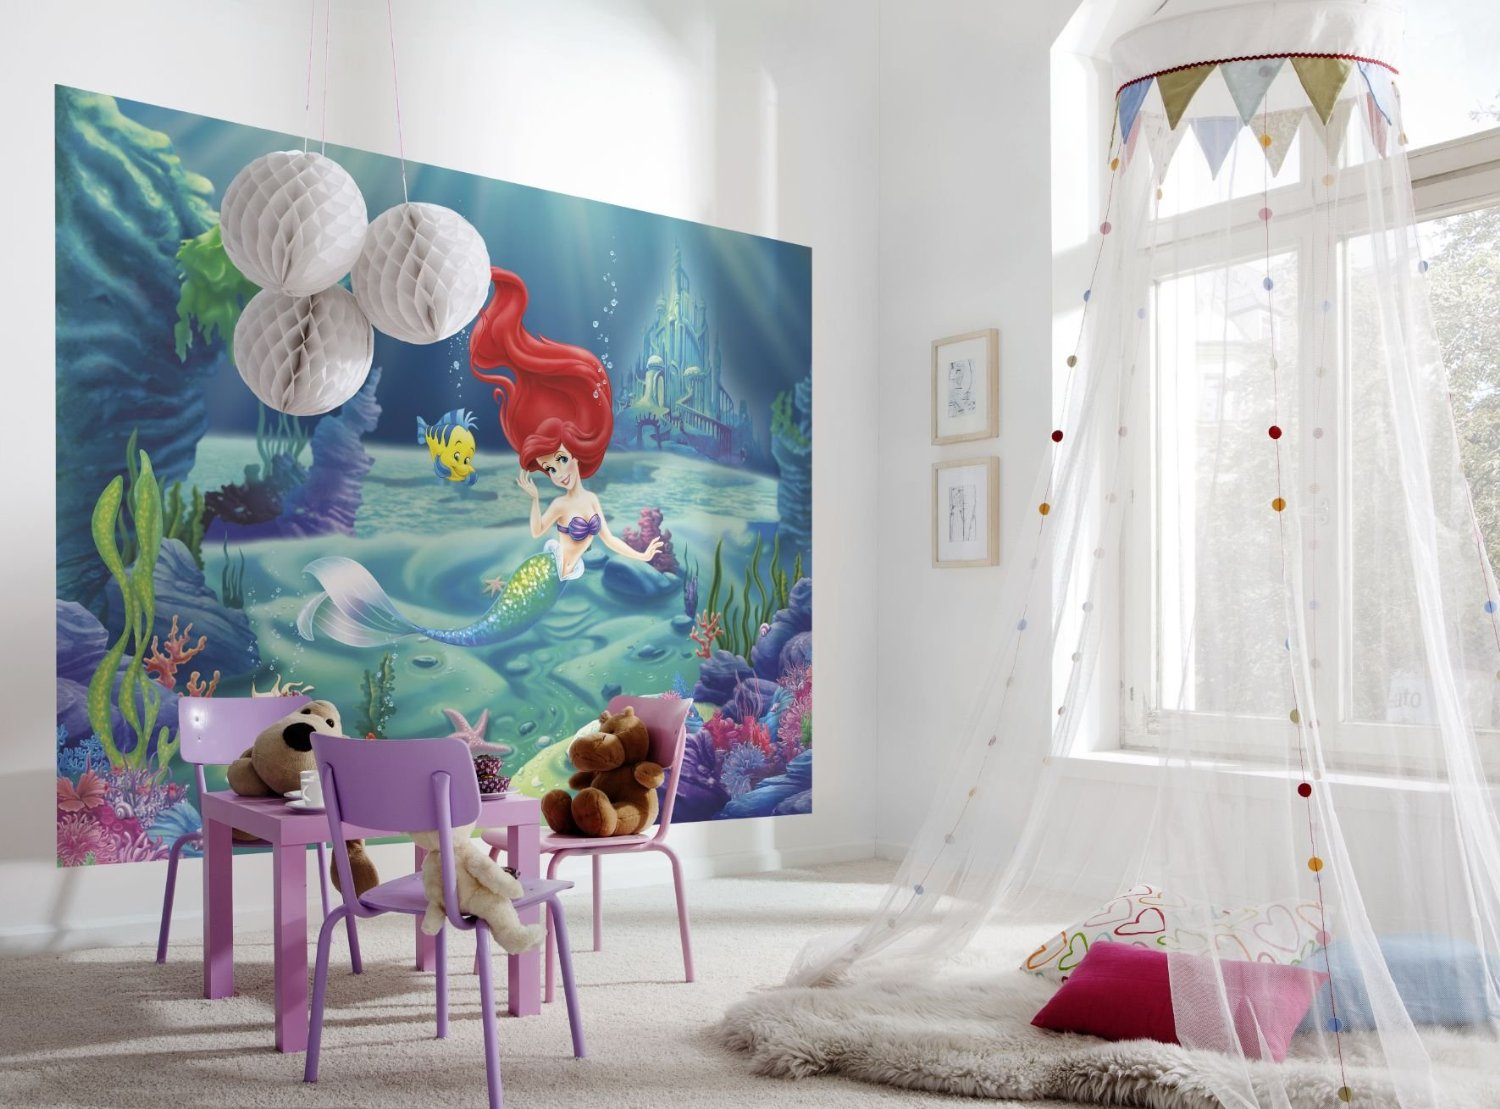 42 Best Disney Room Ideas and Designs for 2018